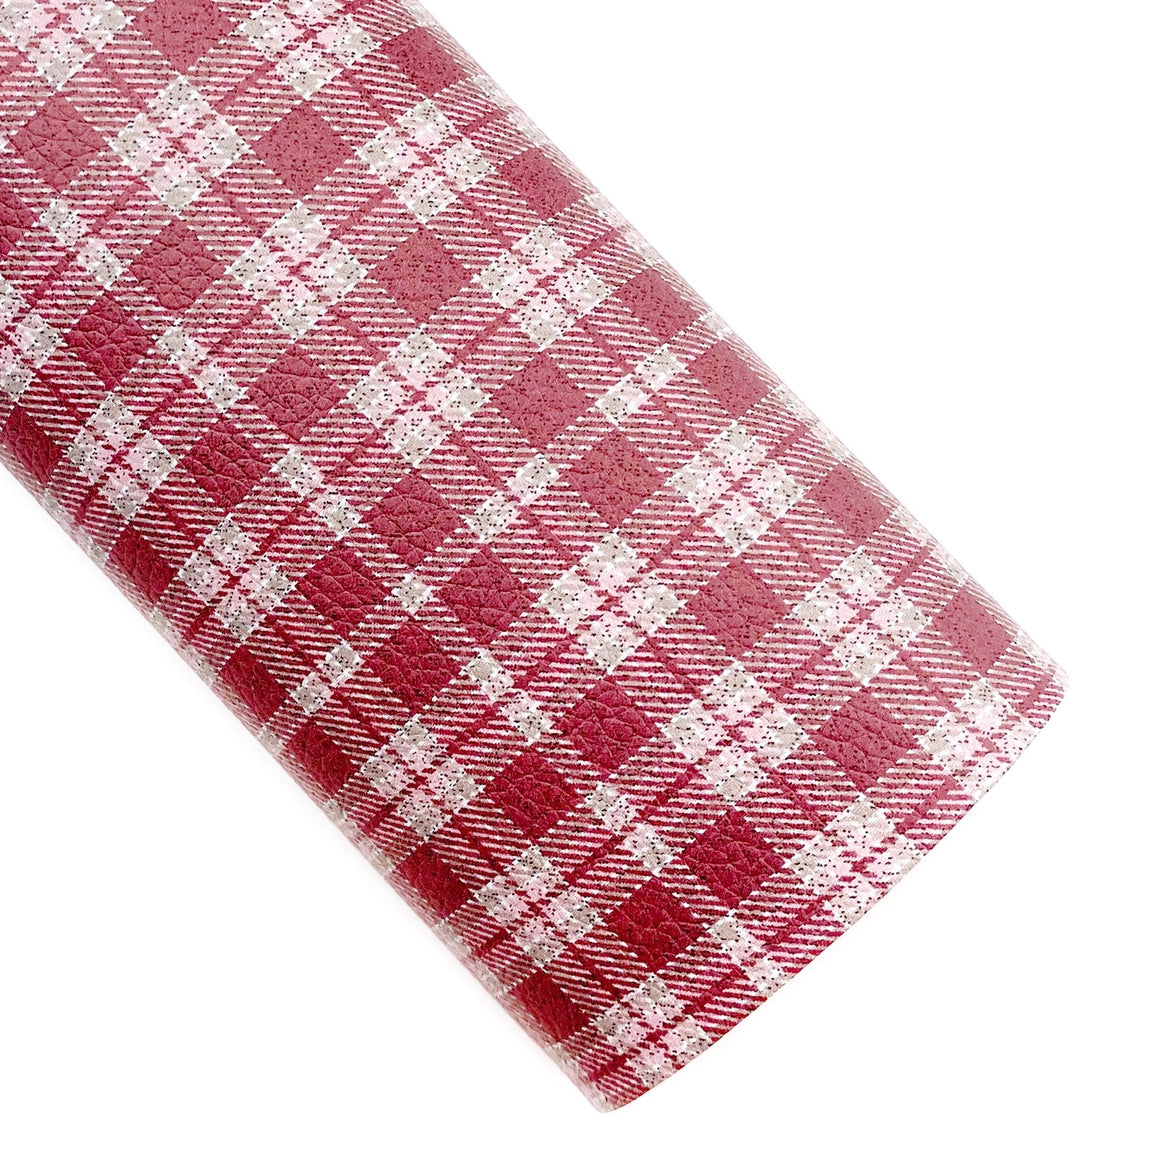 Brick House Tartan Plaid Vegan Leather